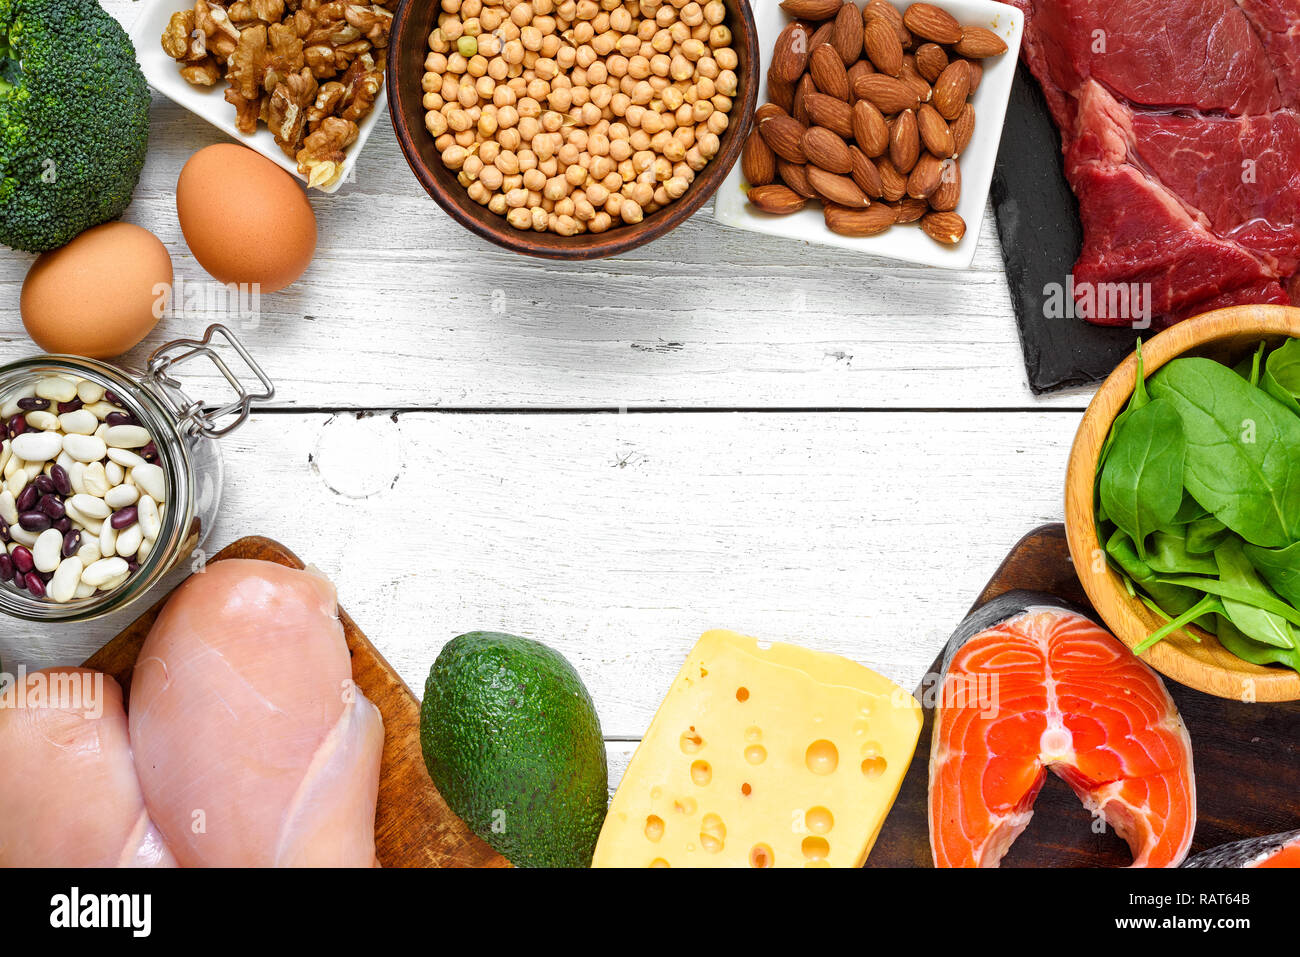 Healthy Food Fish Meat Eggs Vegetables High Resolution Stock Photography And Images Alamy